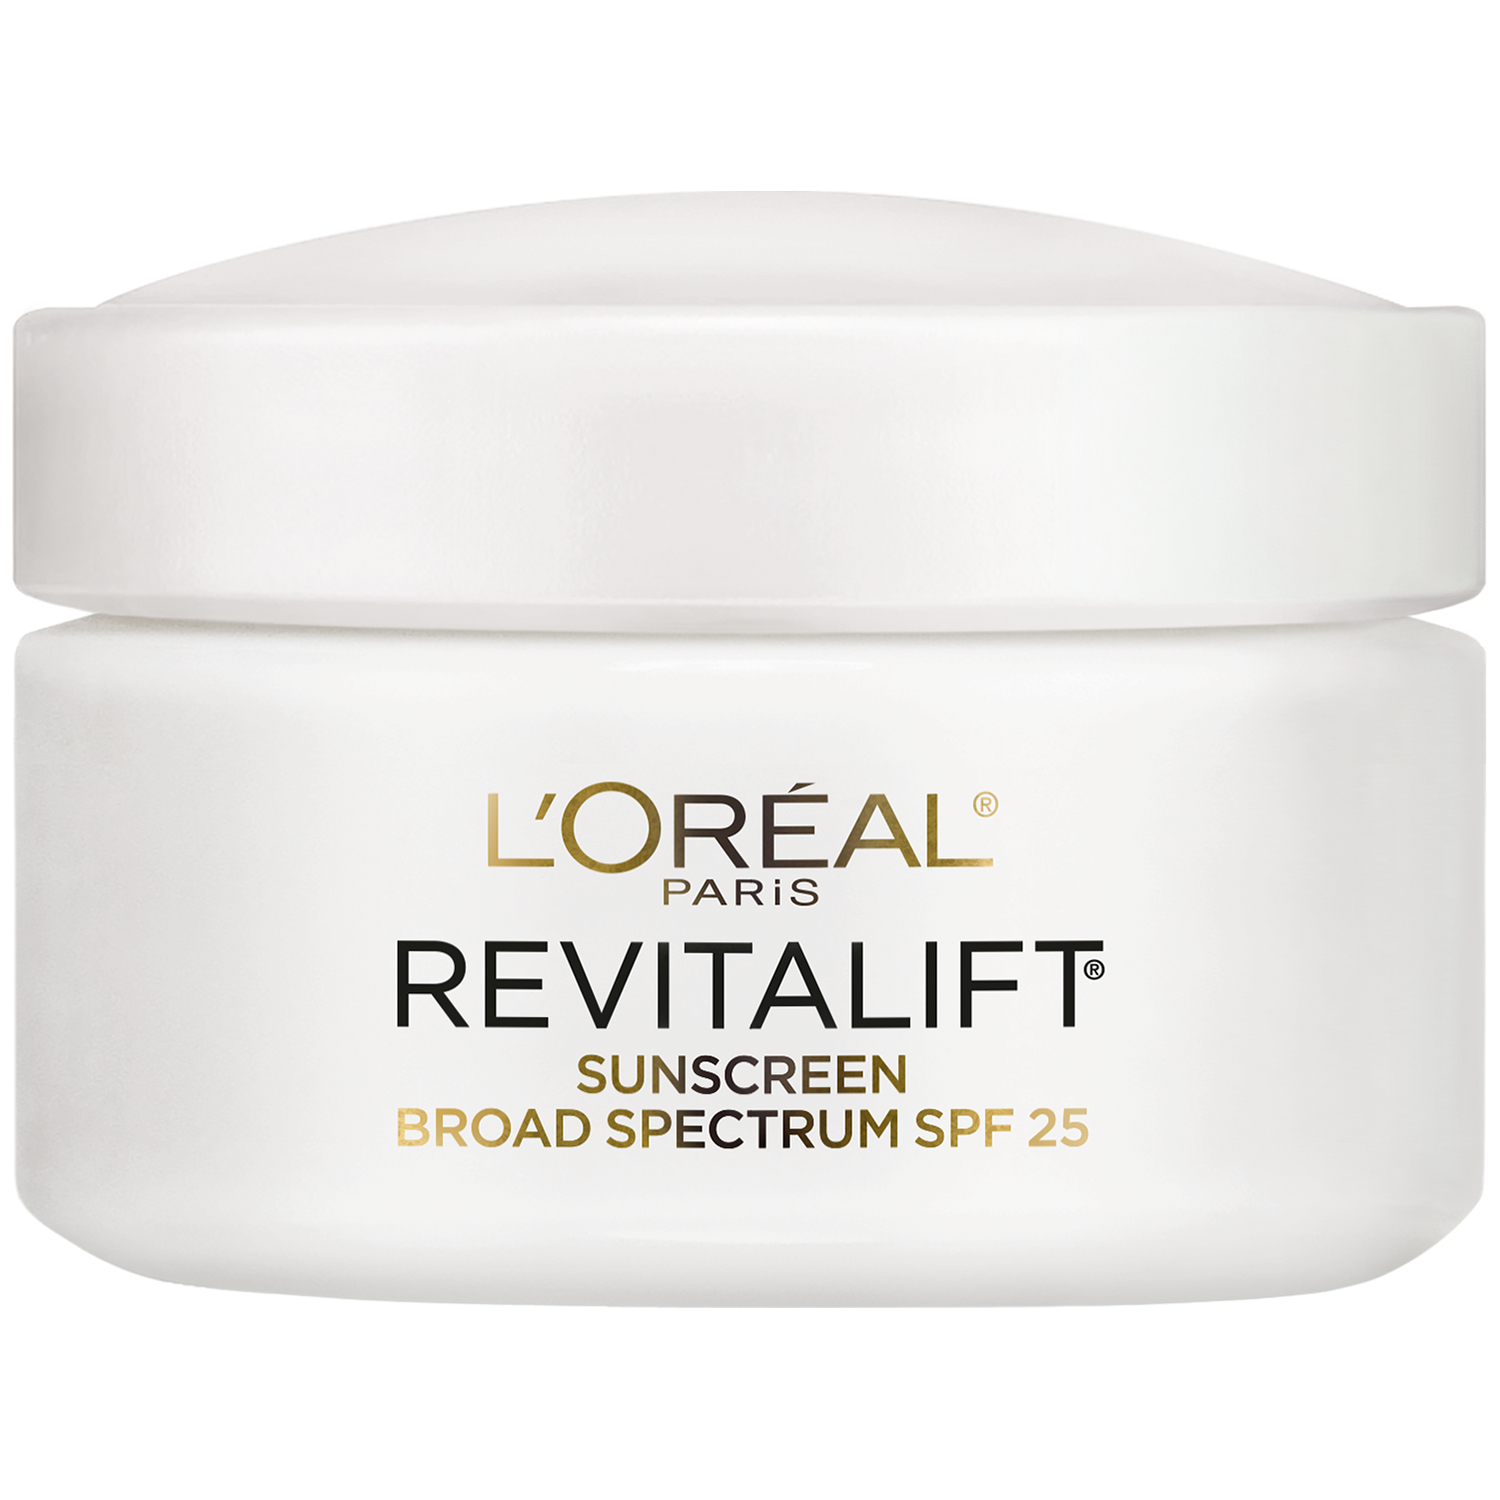 L'Oreal Paris Revitalift Anti-Wrinkle + Firming Day Moisturizer SPF 25